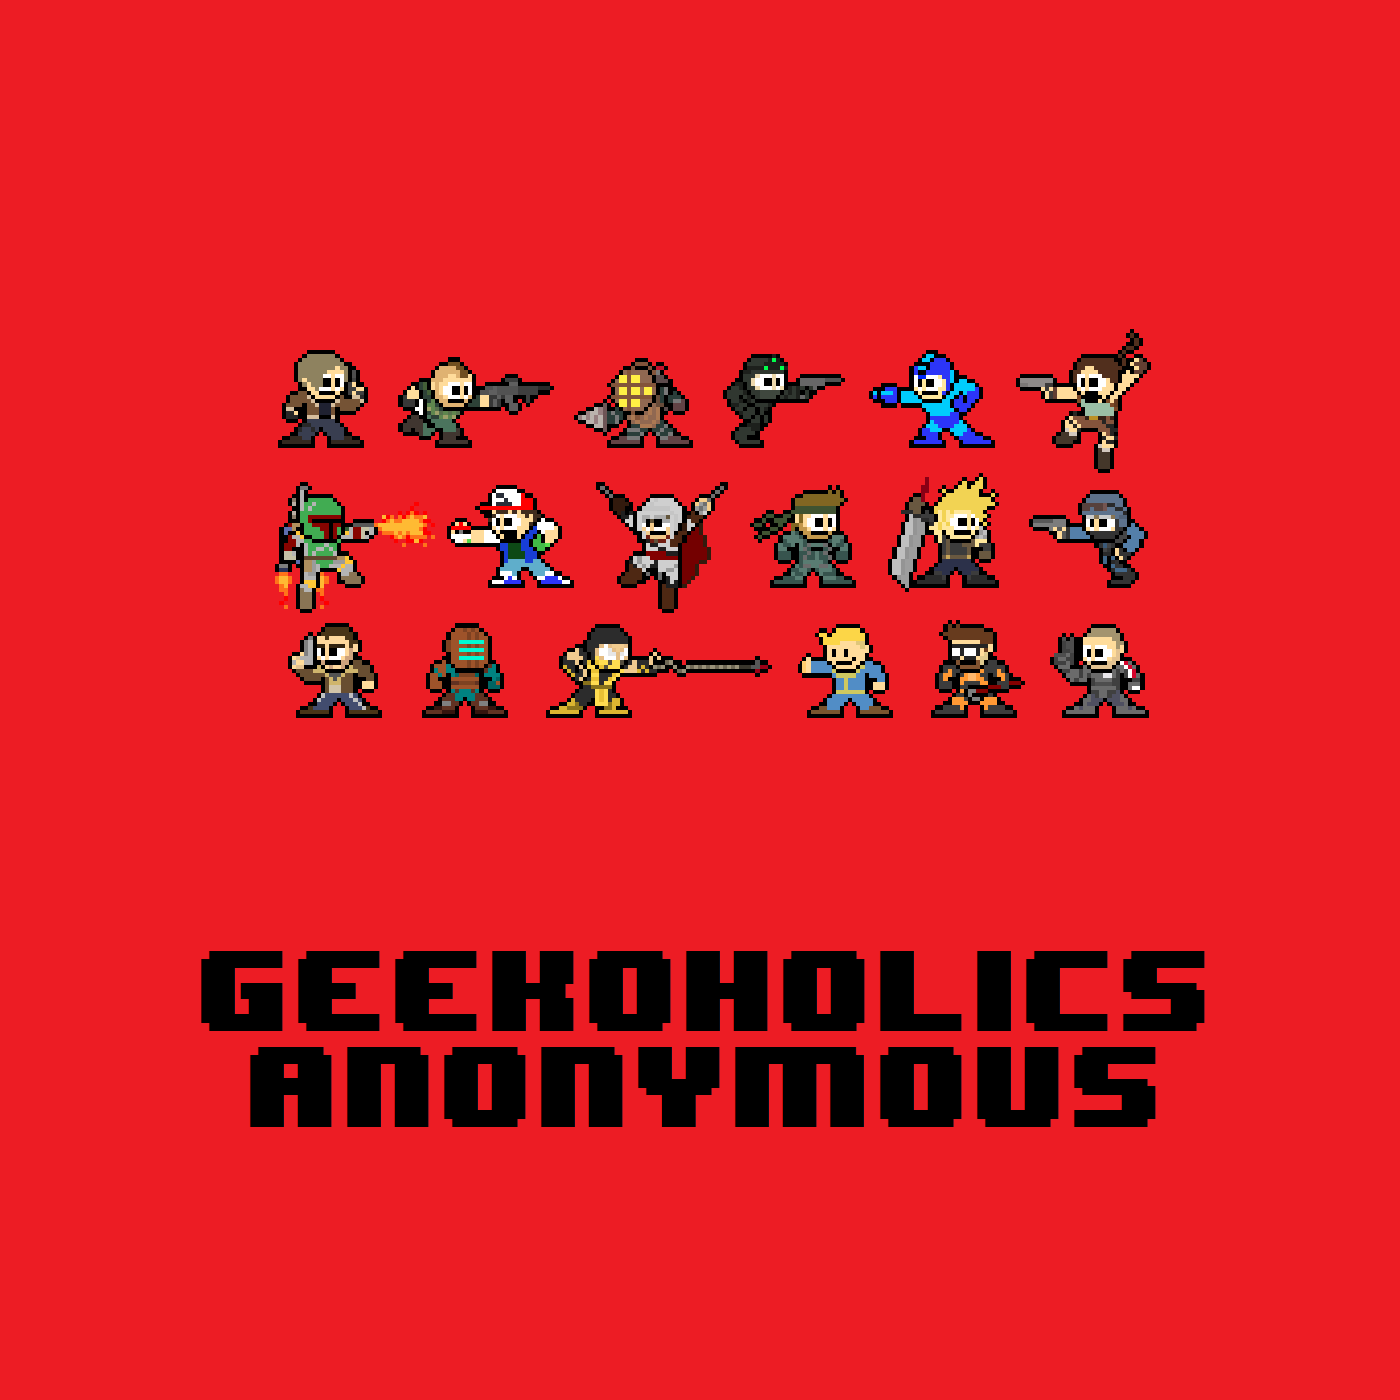 Skyward Sword HD, Activision Blizzard Lawsuit, PAX West and more - Geekoholics Anonymous Podcast 316 show art